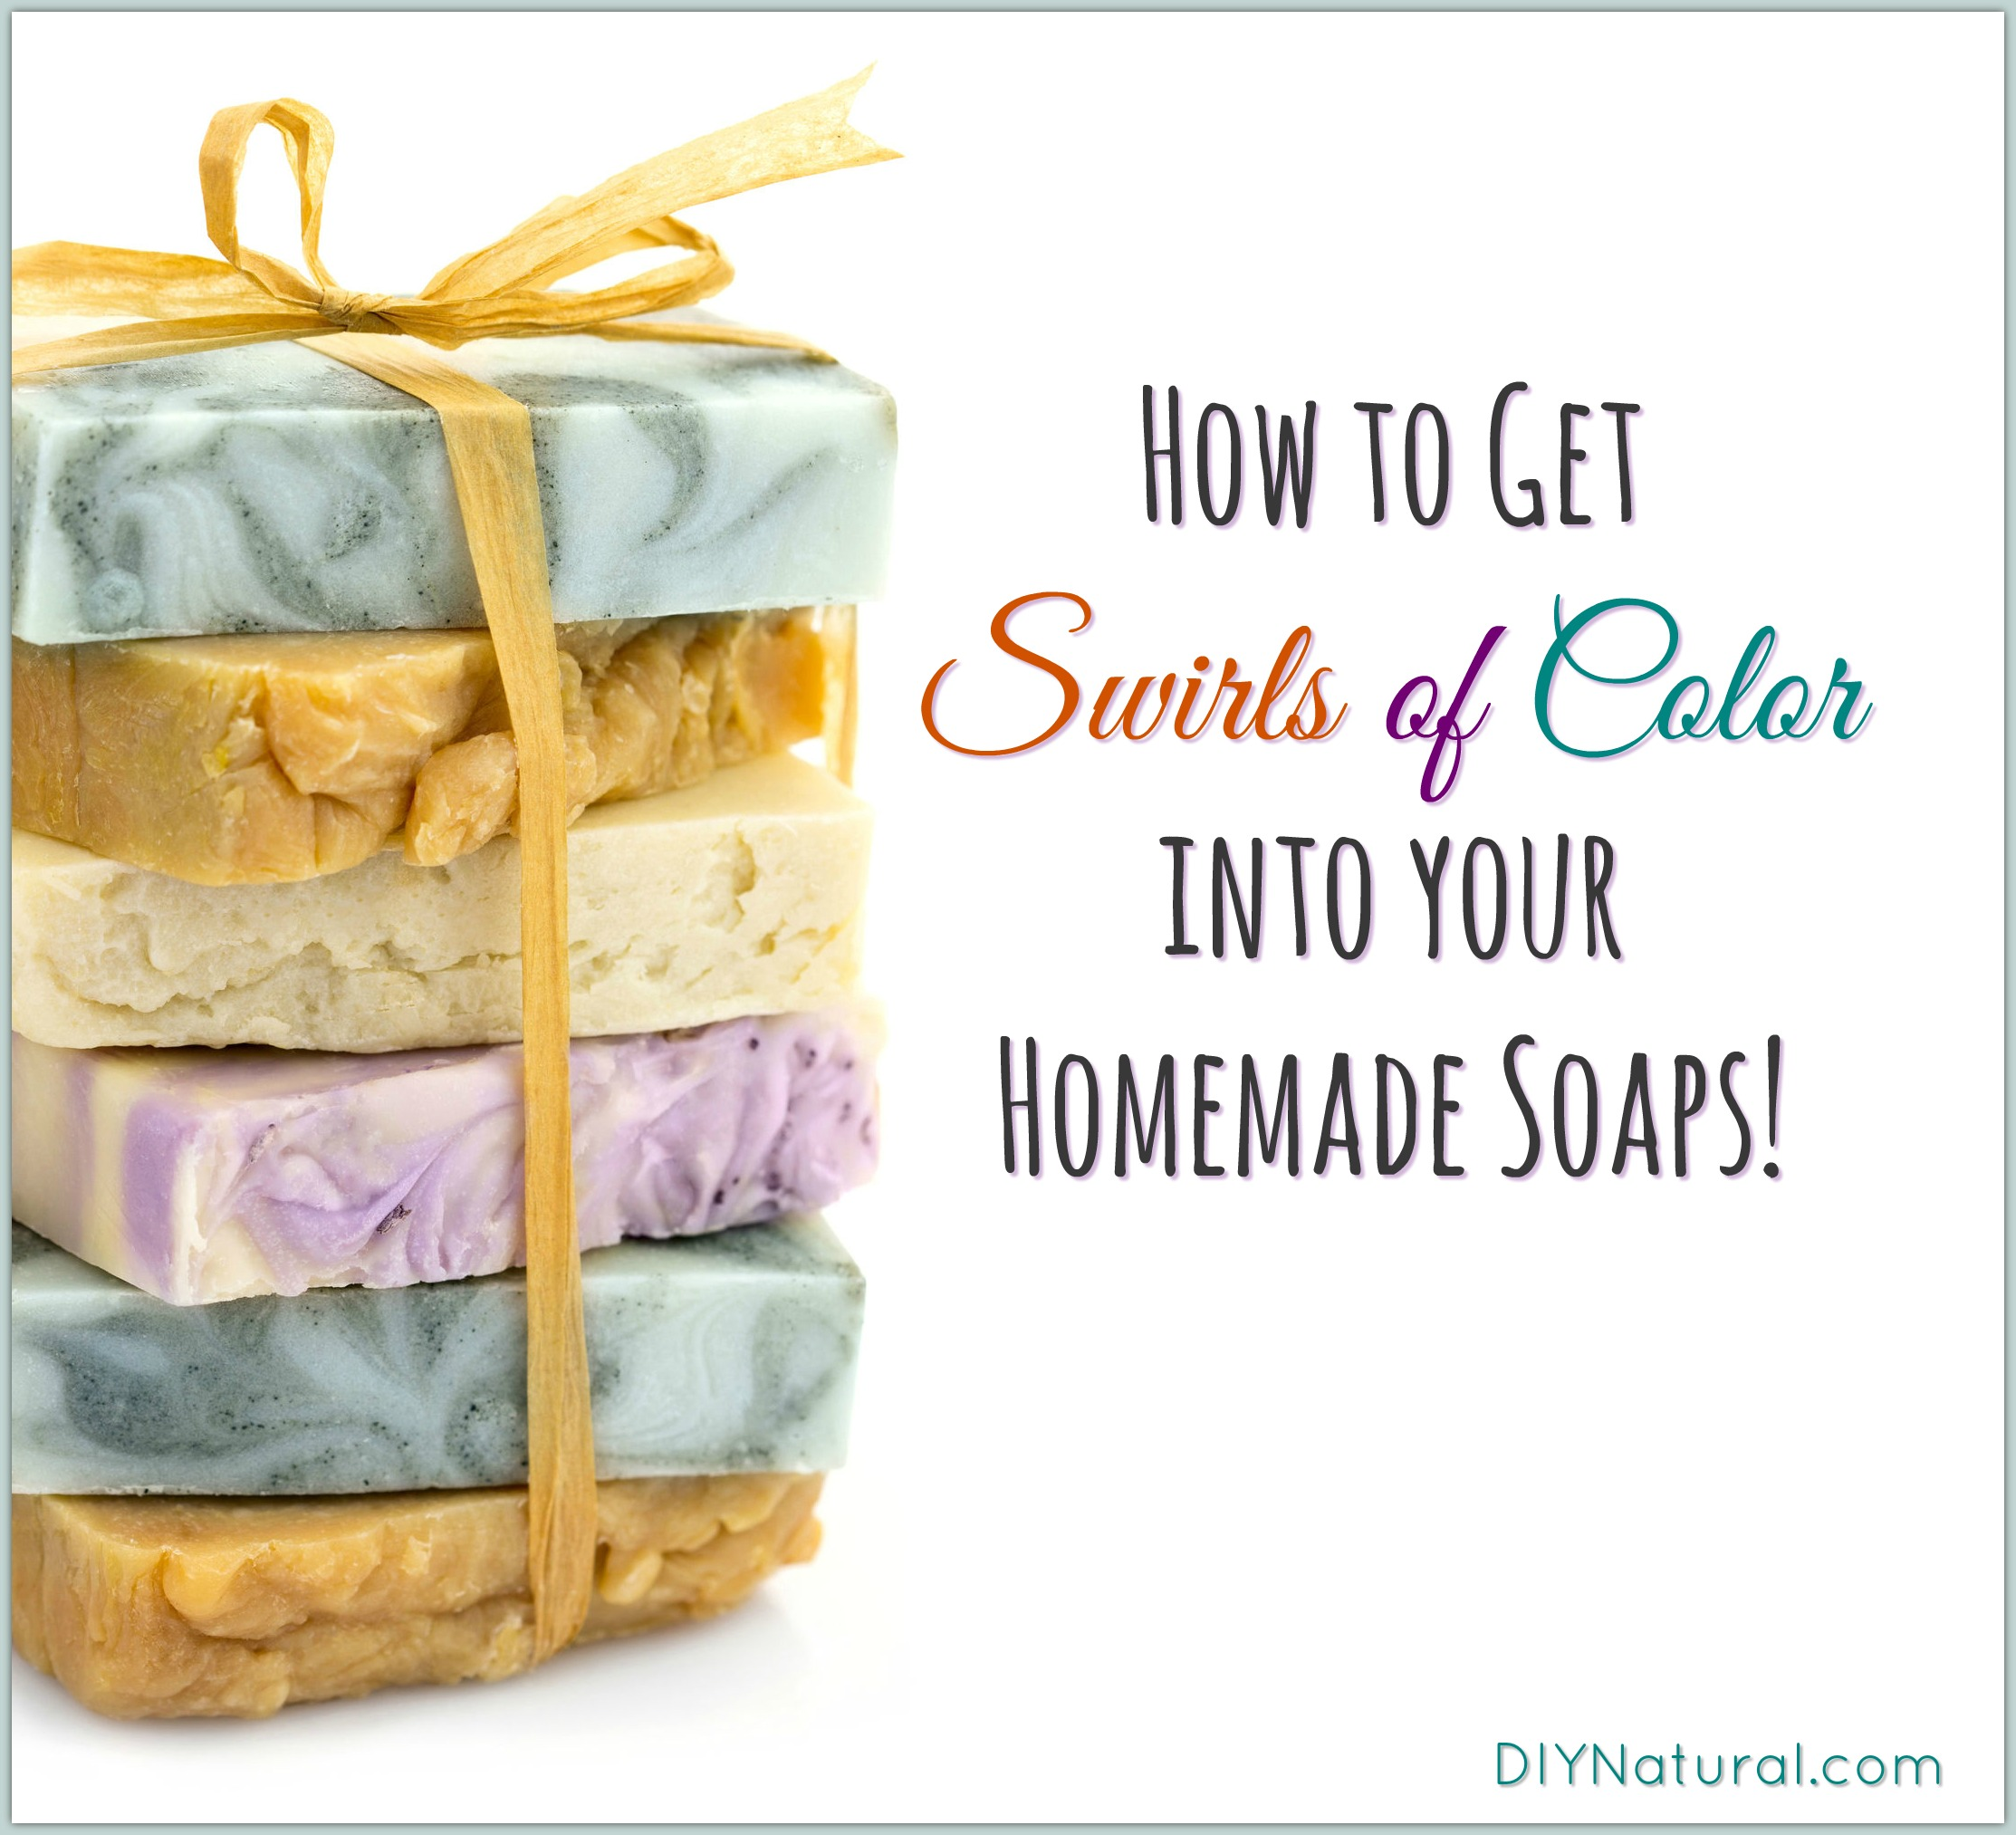 Homemade Soap Tips How To Add Swirls Of Color To Your Soap